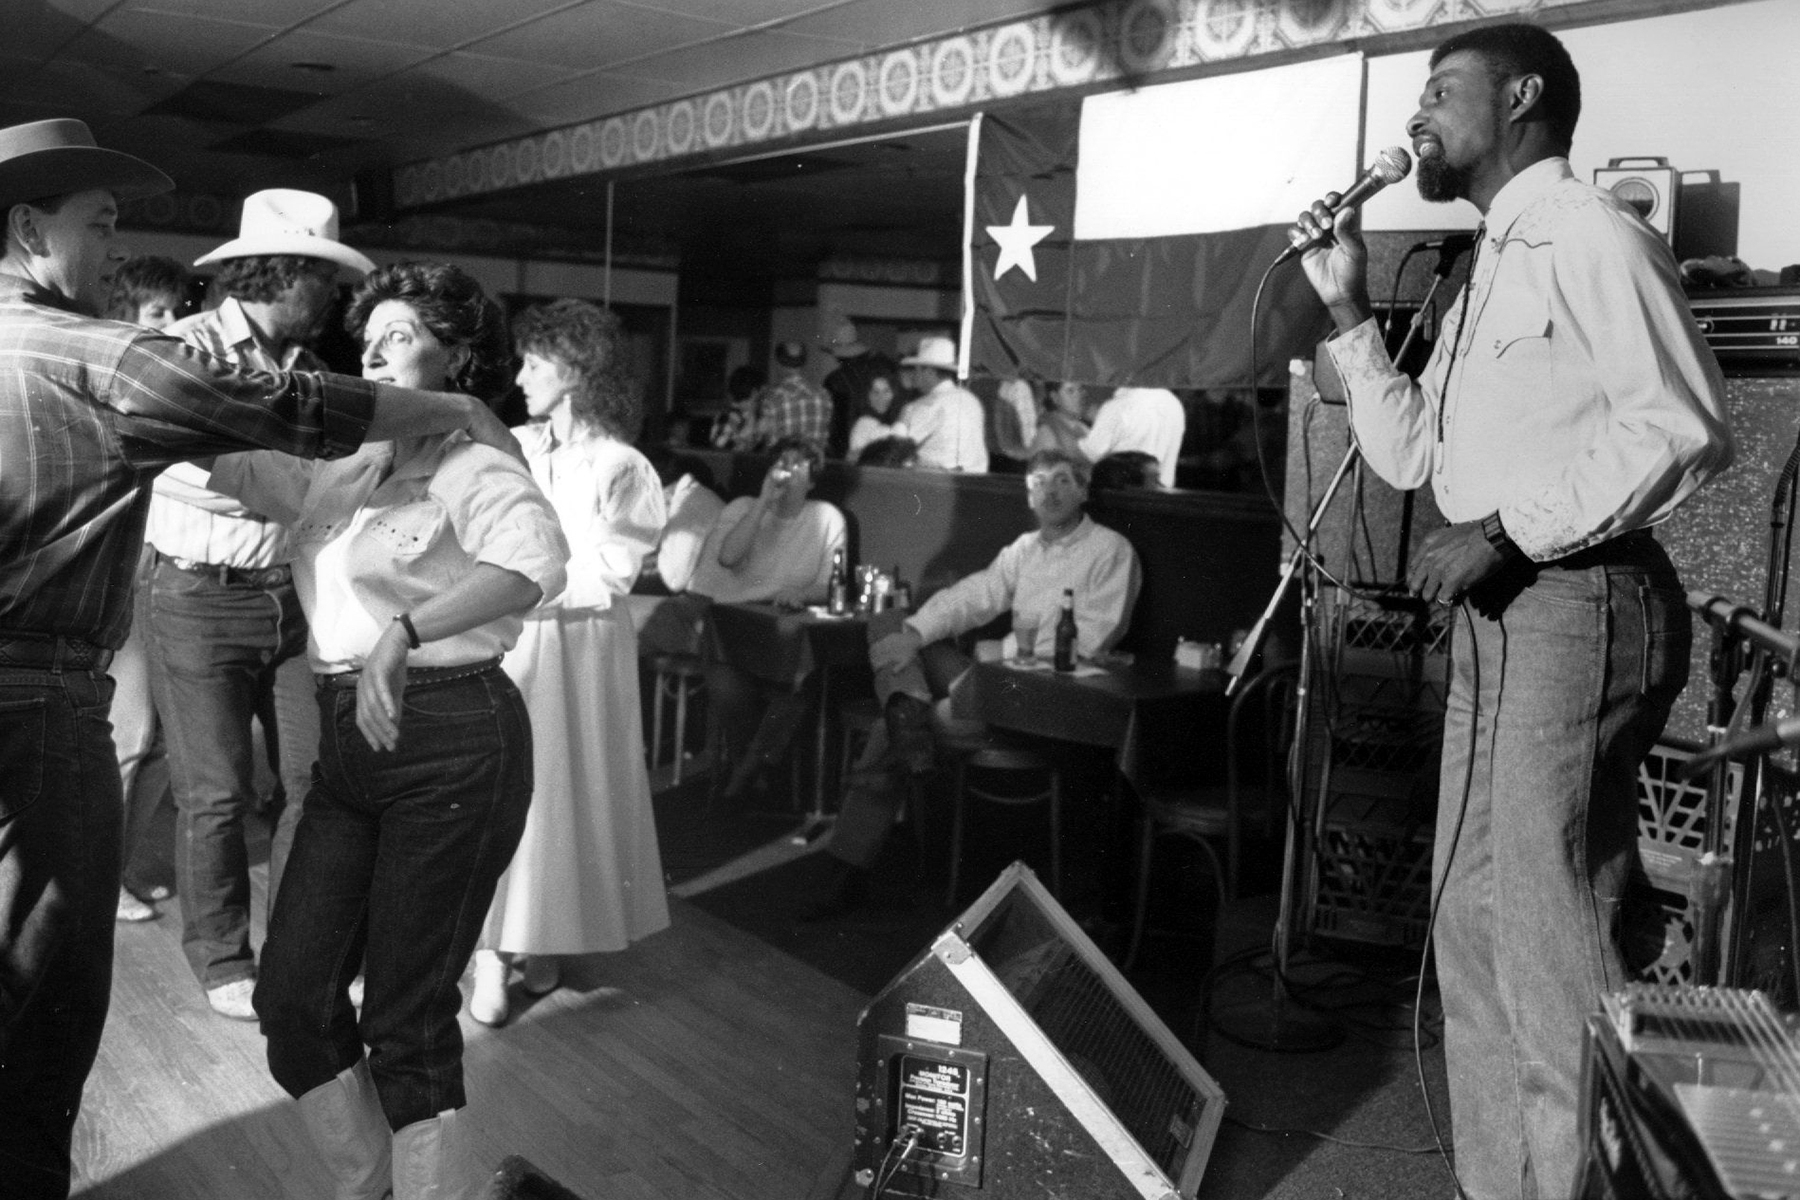 4/25/90 - by Frank Johnston - Alexandria, VA - Cleve Francis, a Mount Vernon cardiologist, sings counrty western music at GW's Restaurant in Alexandria, VA. (Photo by Frank Johnston/The The Washington Post via Getty Images)